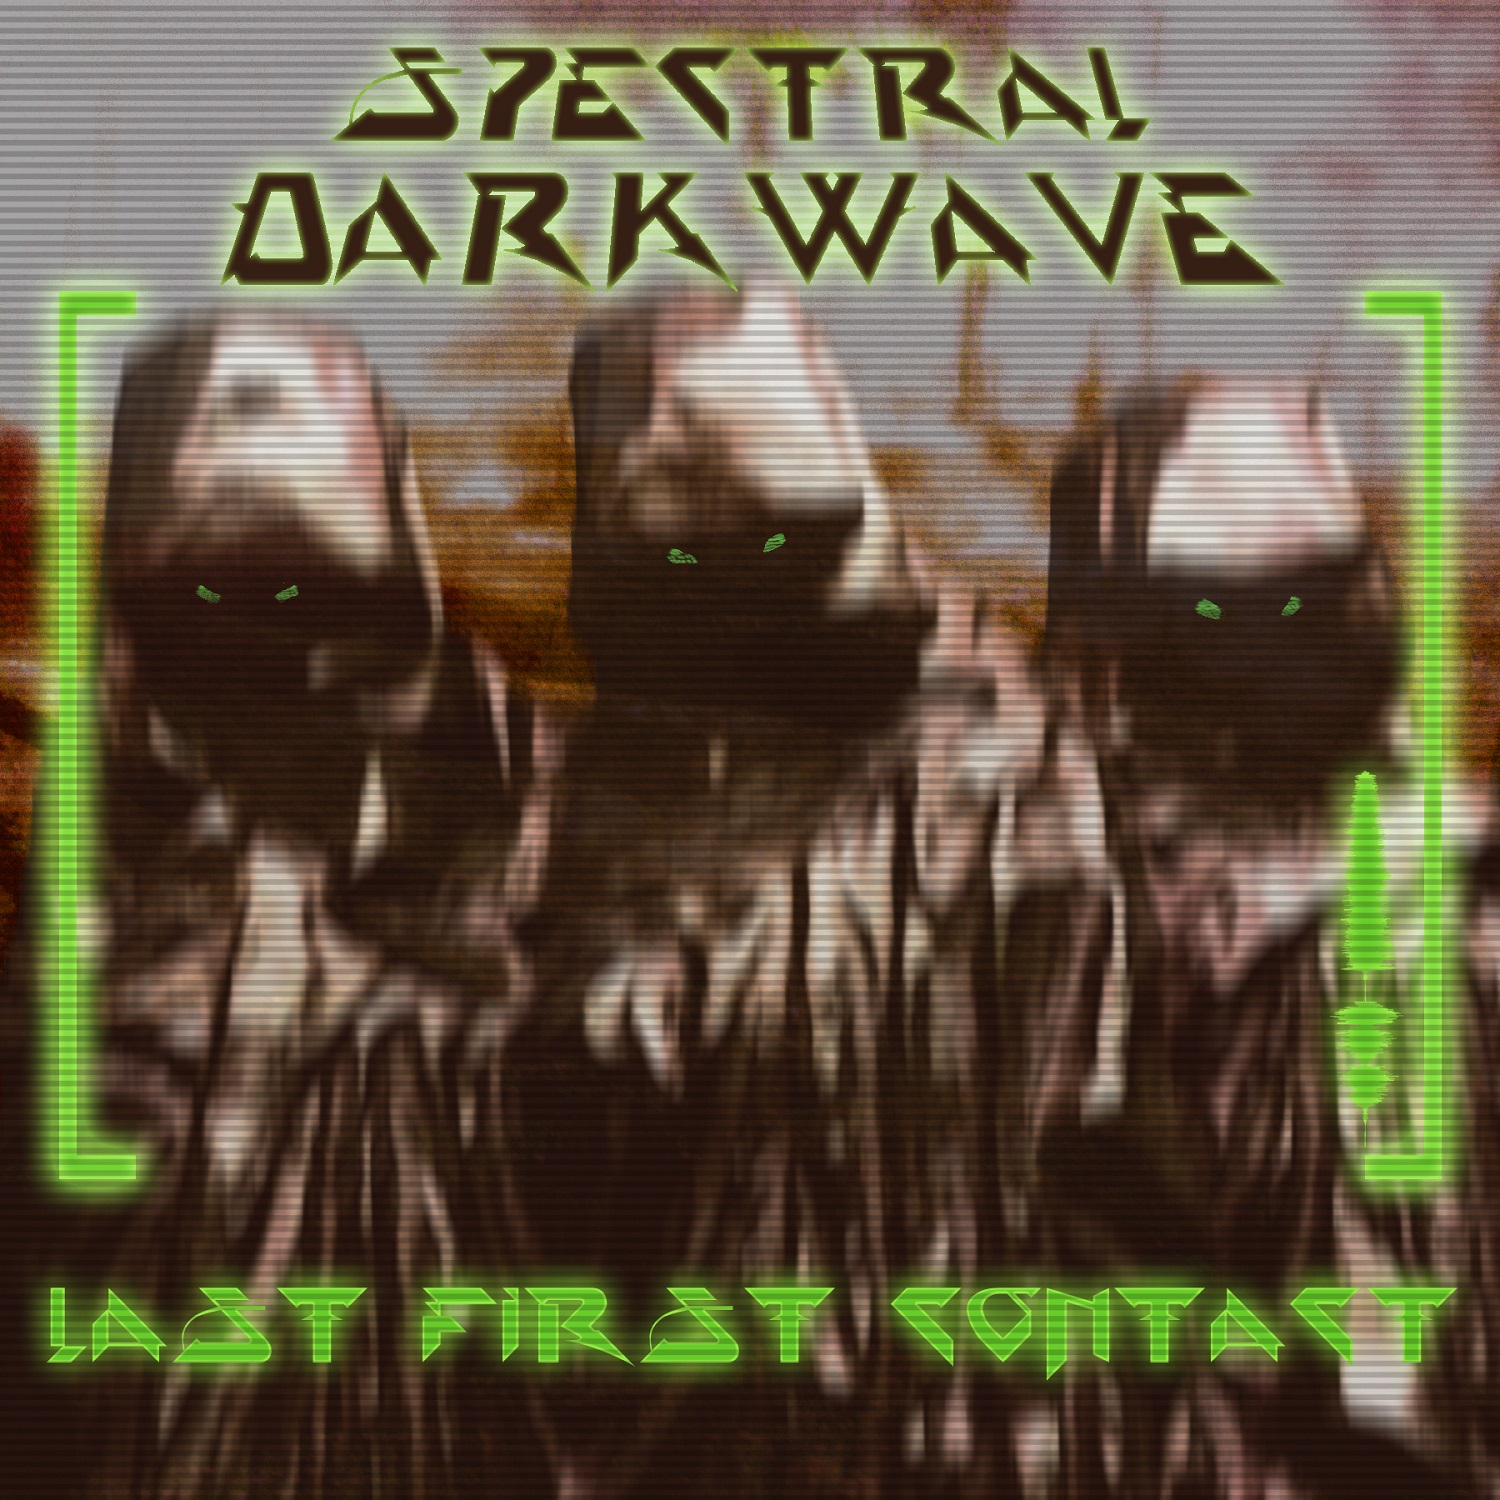 Spectral Darkwave – Last First Contact Review